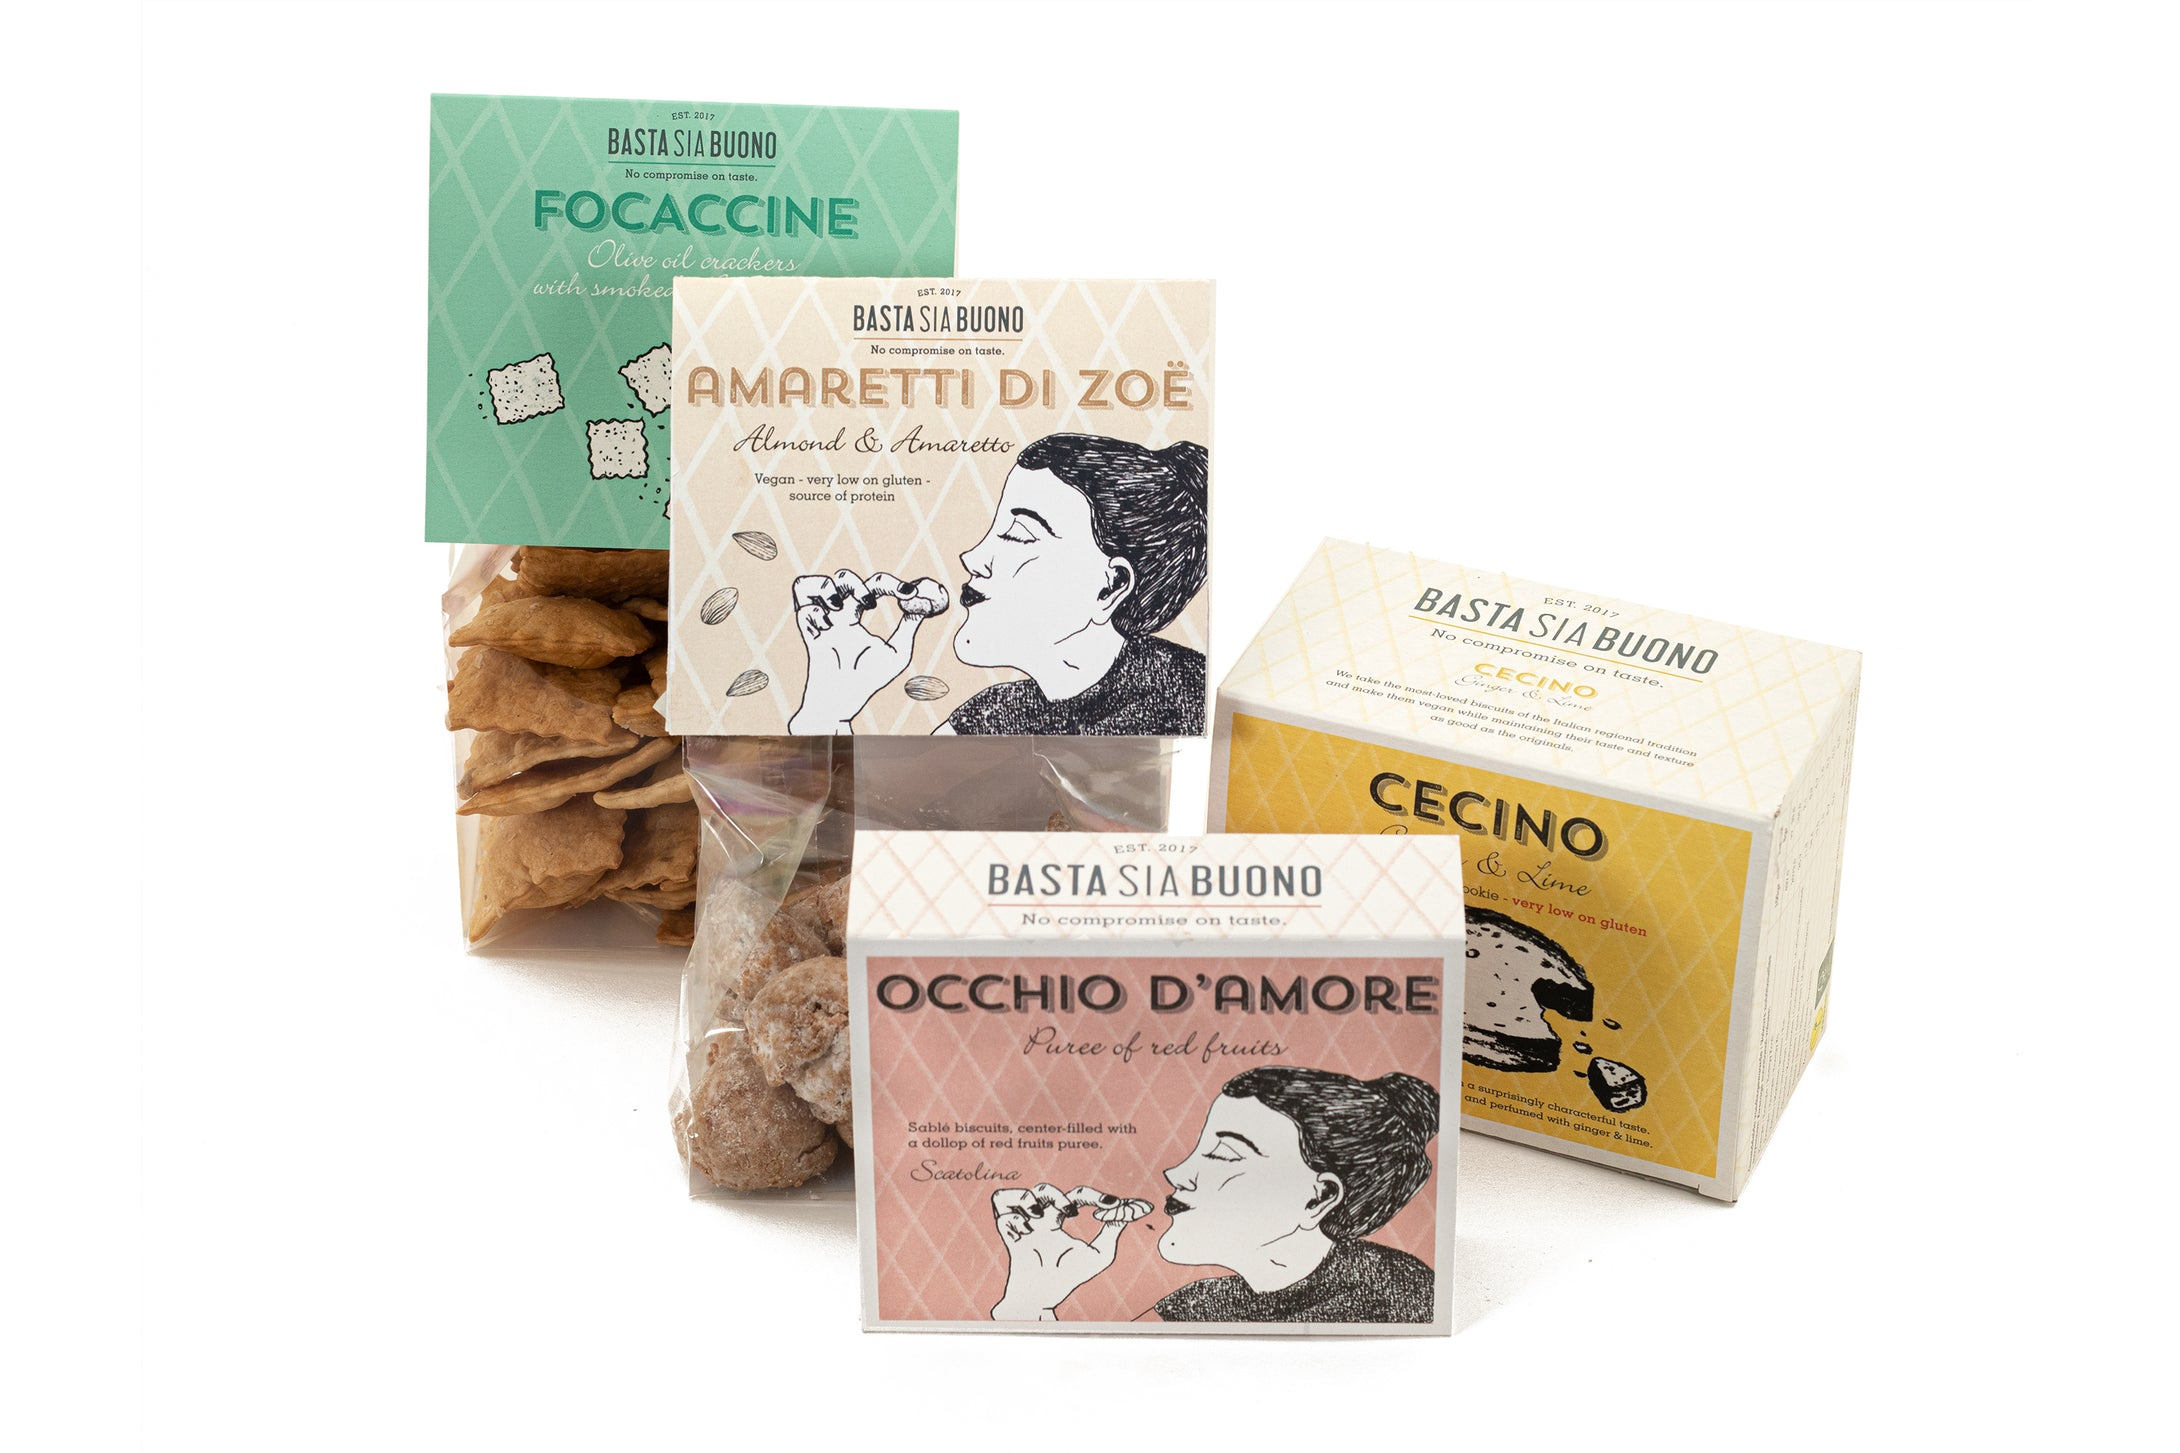 A selection of our vegan biscuits and crackers with personalised wishcard